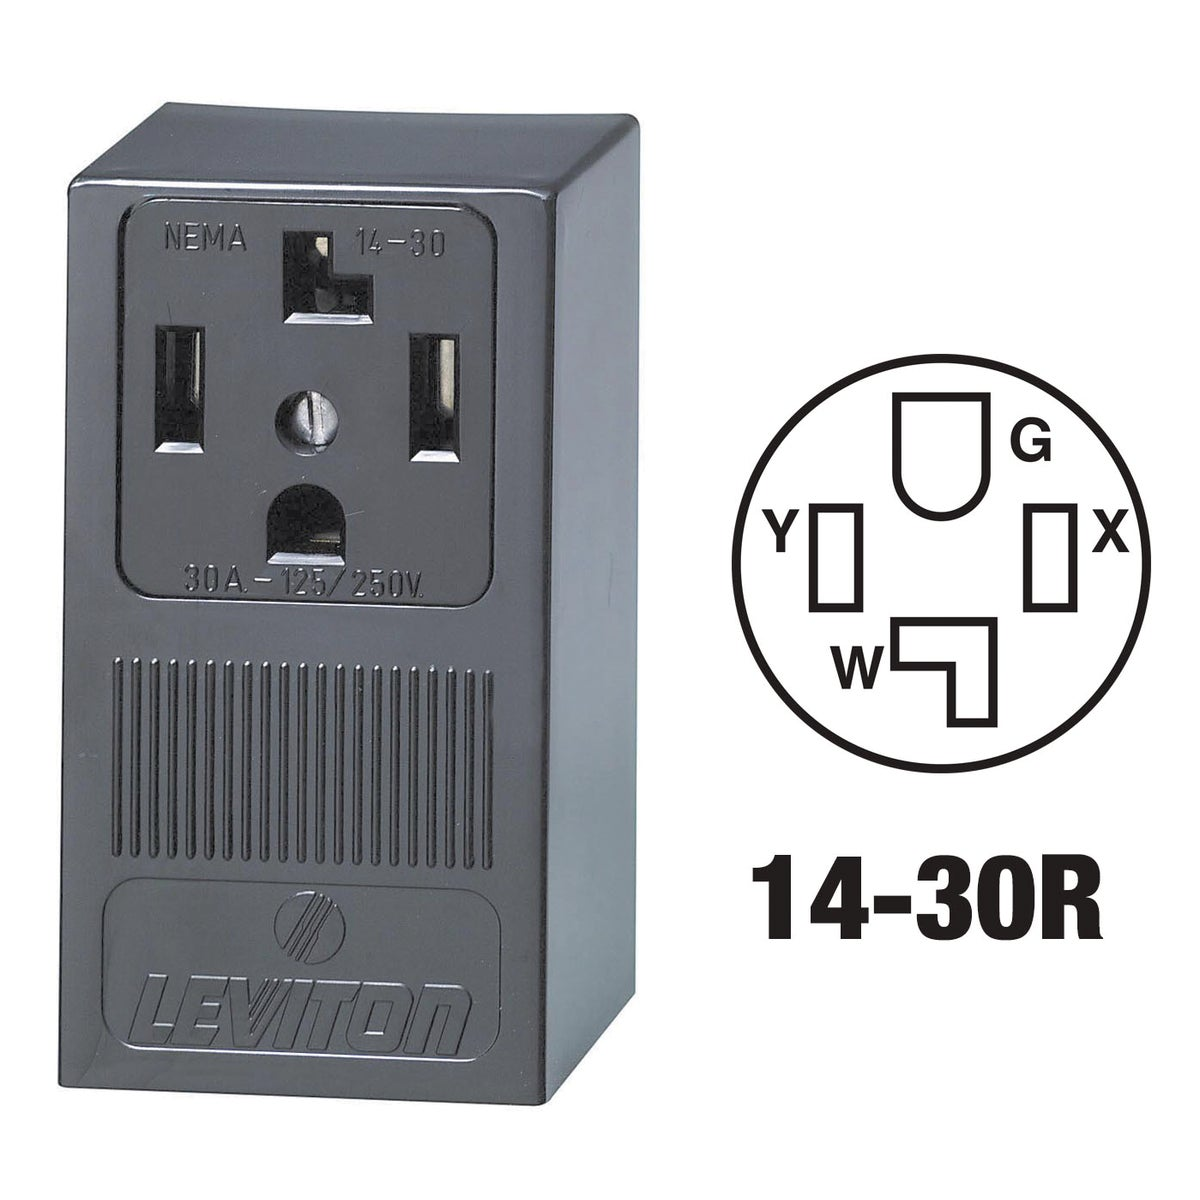 SURFACE DRYER OUTLET - 55054 by Leviton Mfg Co